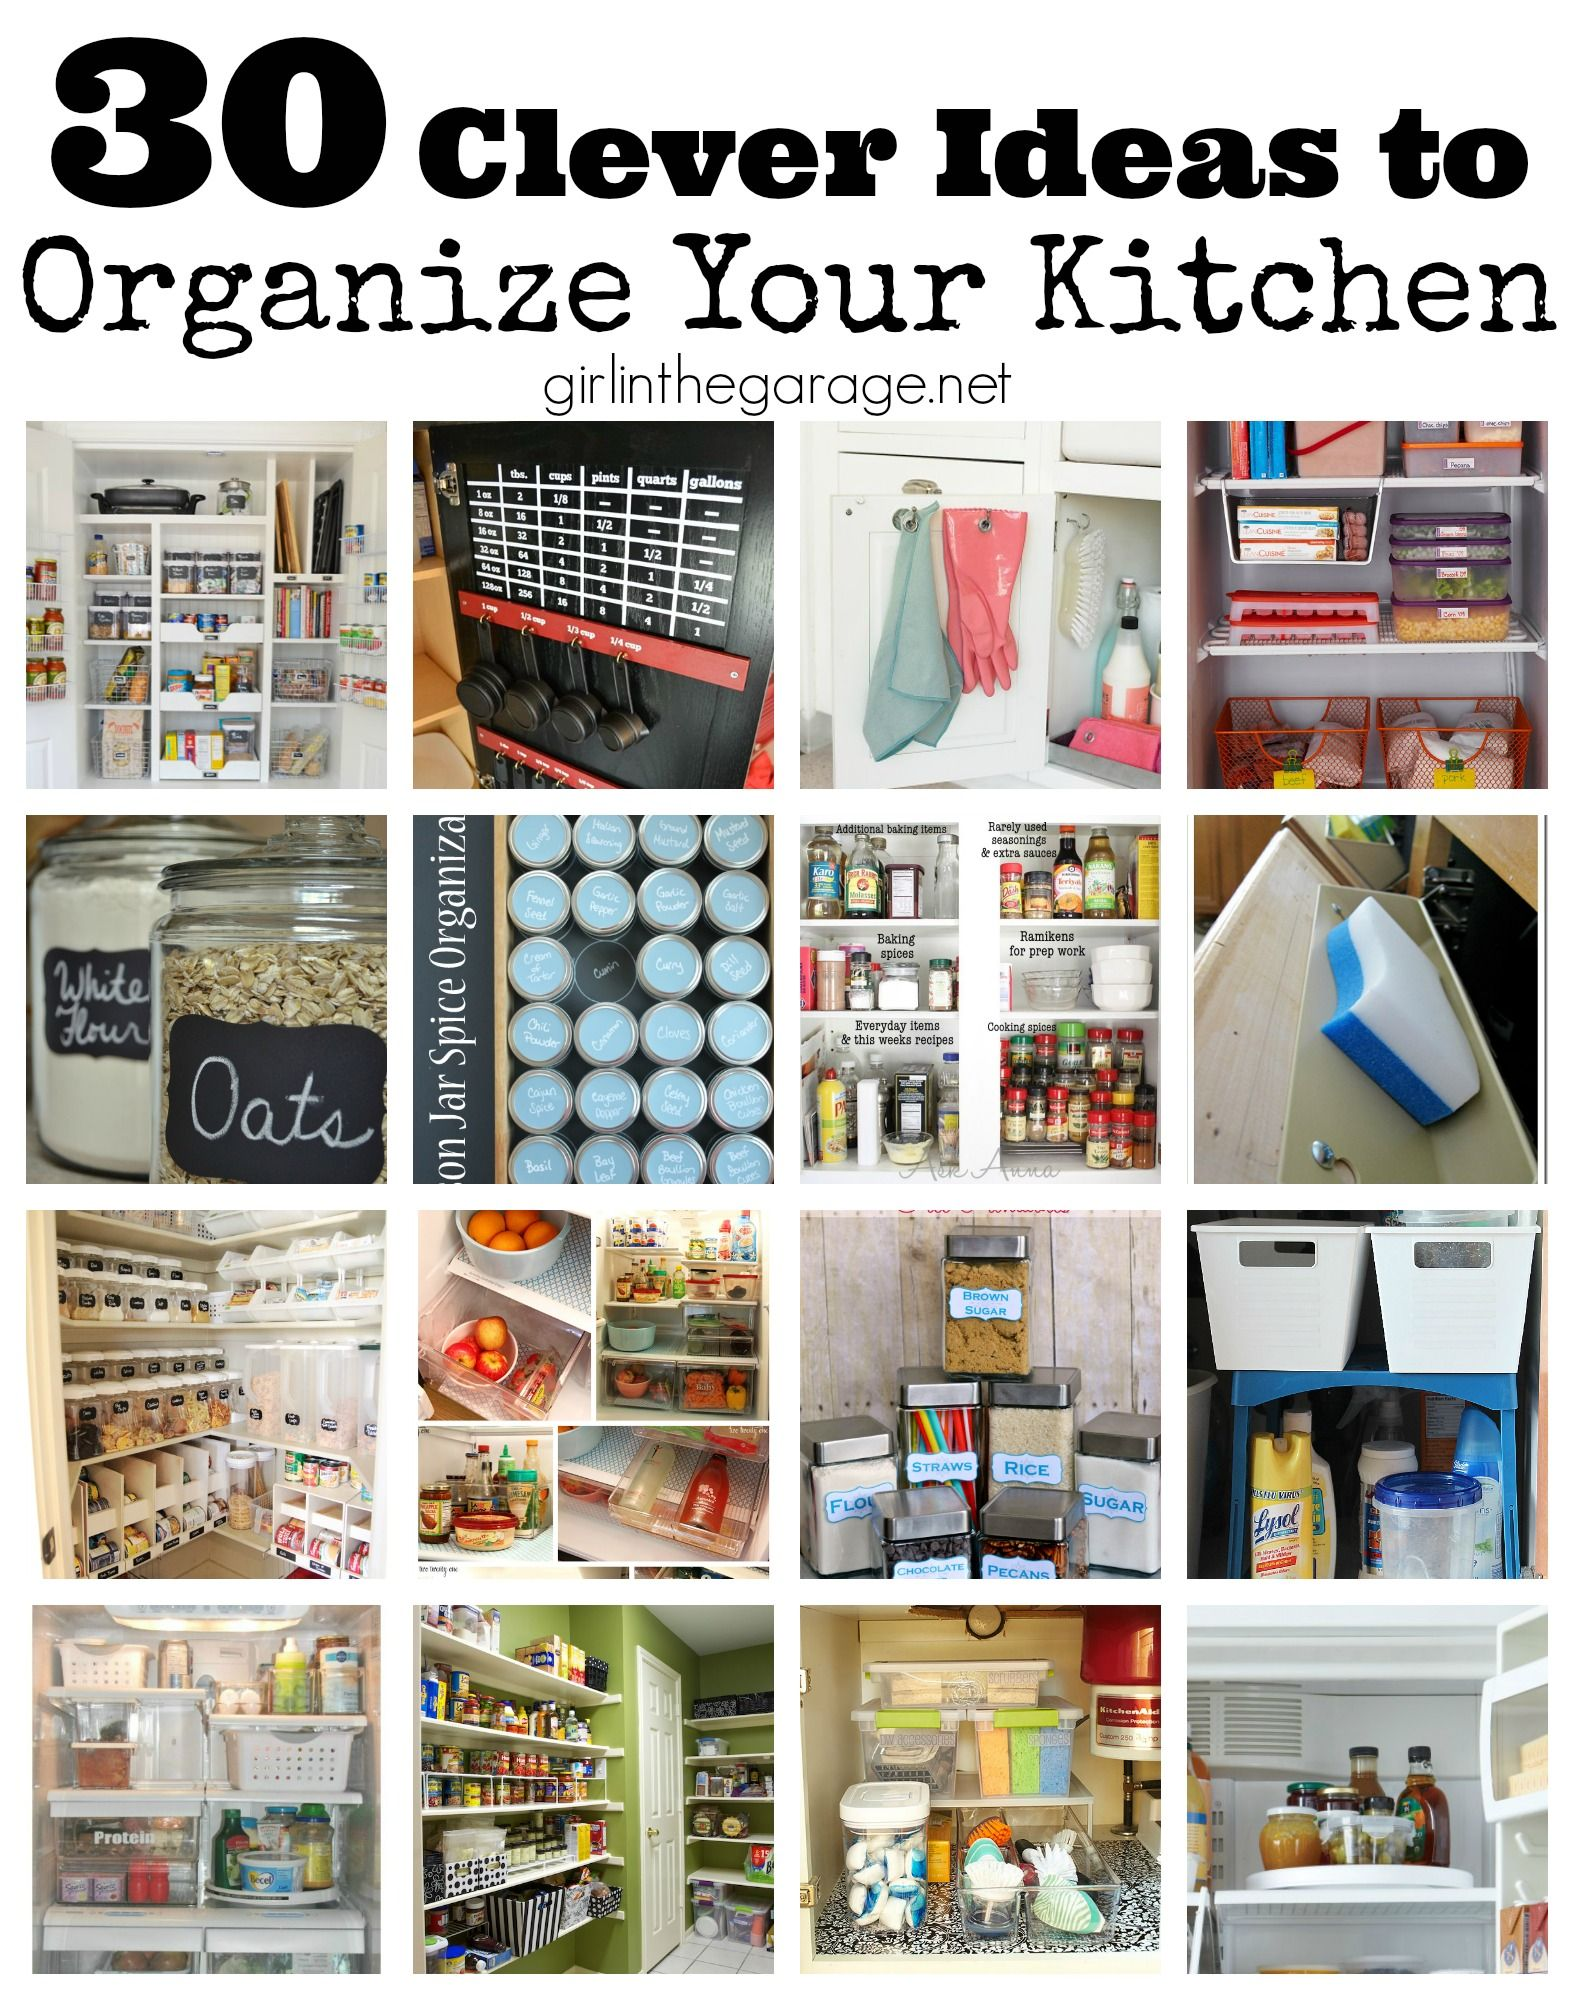 30 clever ideas to organize your kitchen | refrigerator freezer